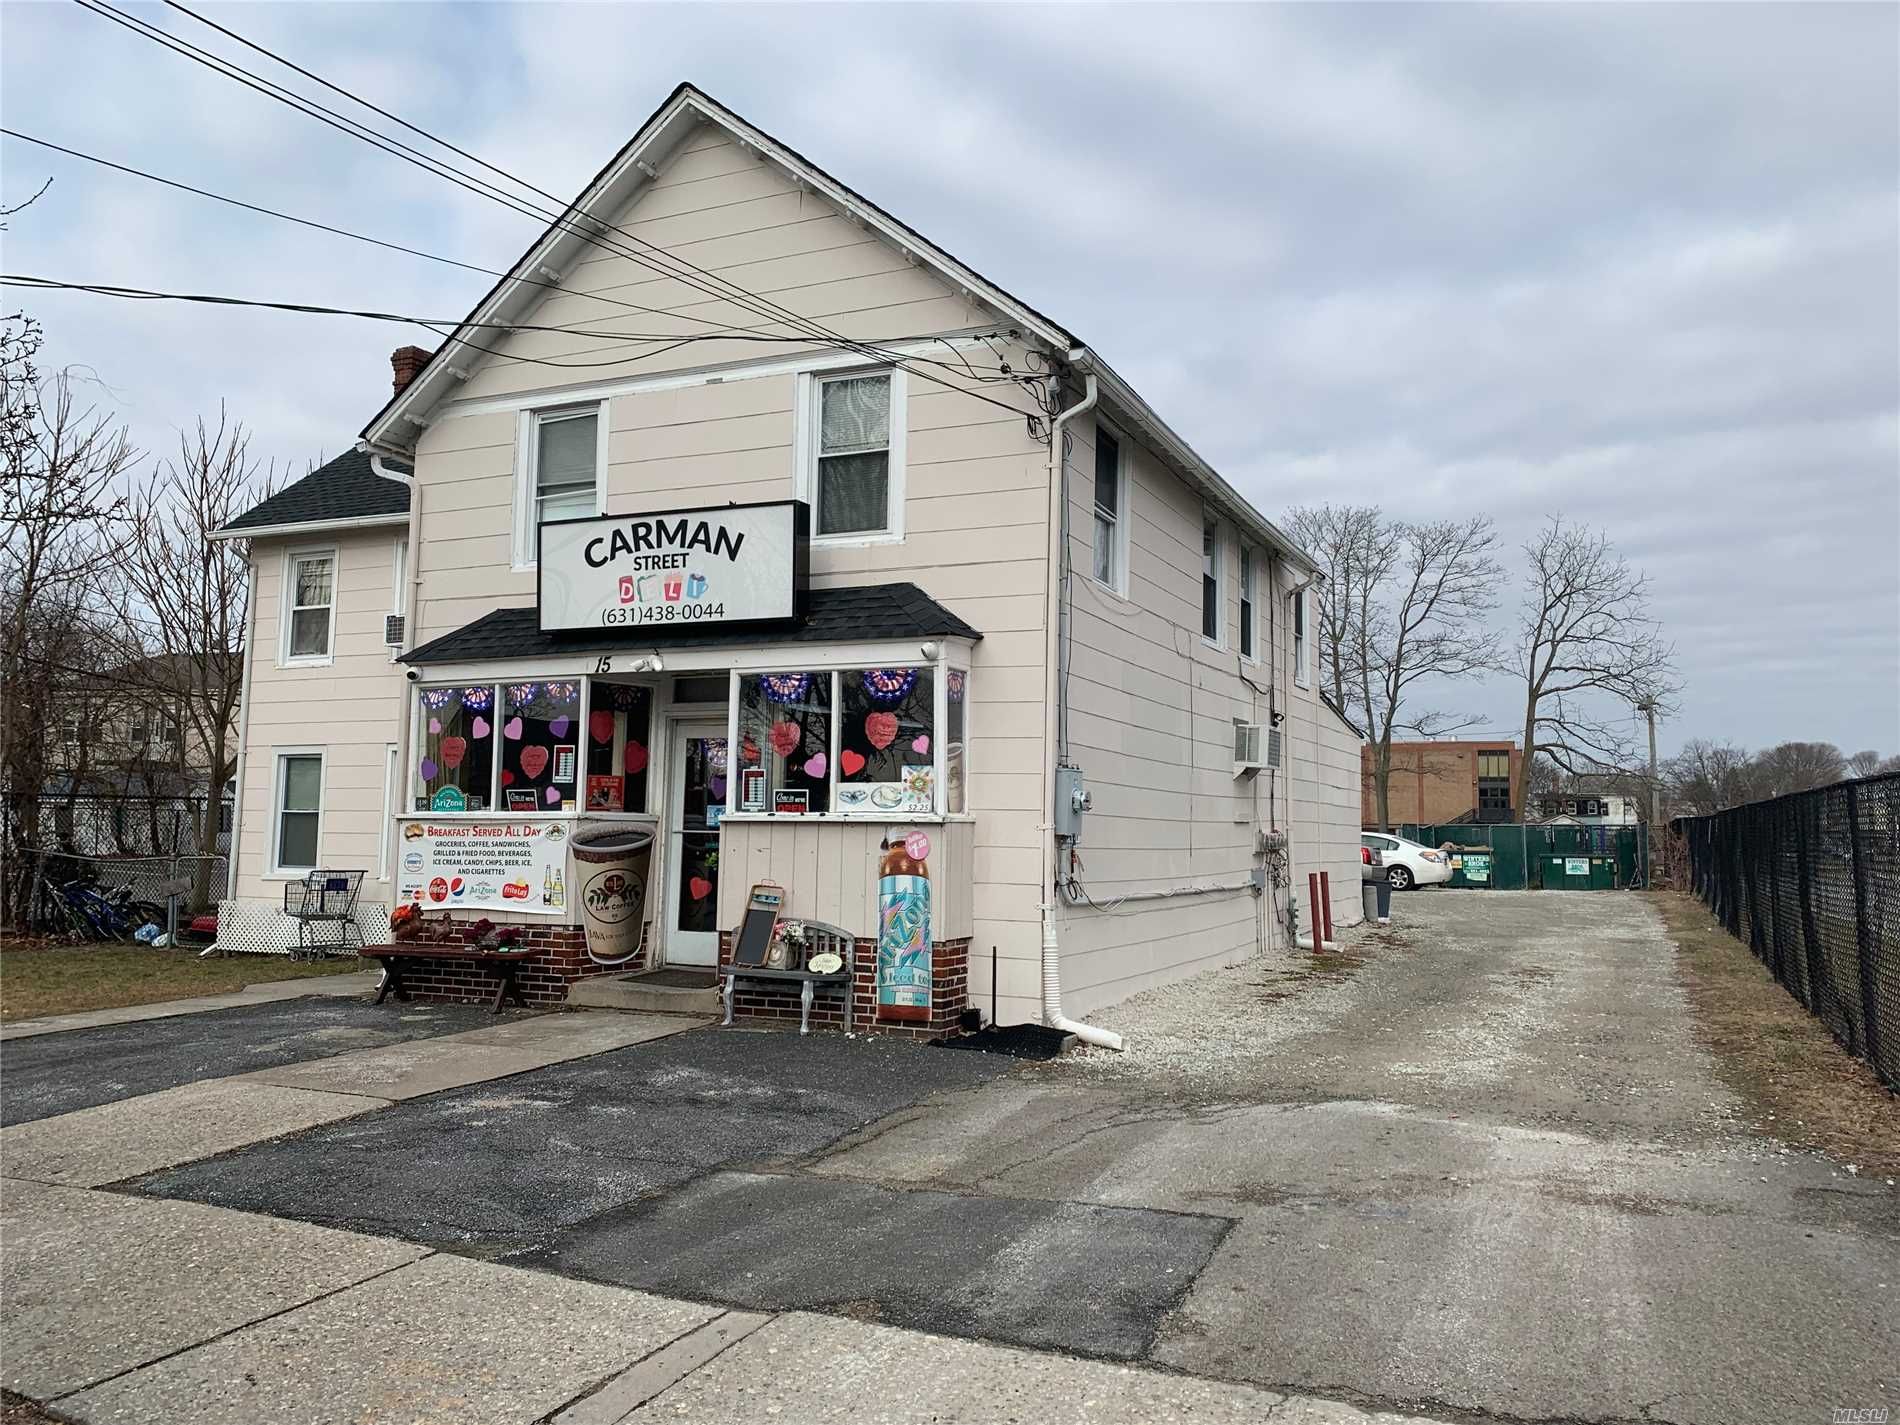 15 Carman St - Patchogue, New York